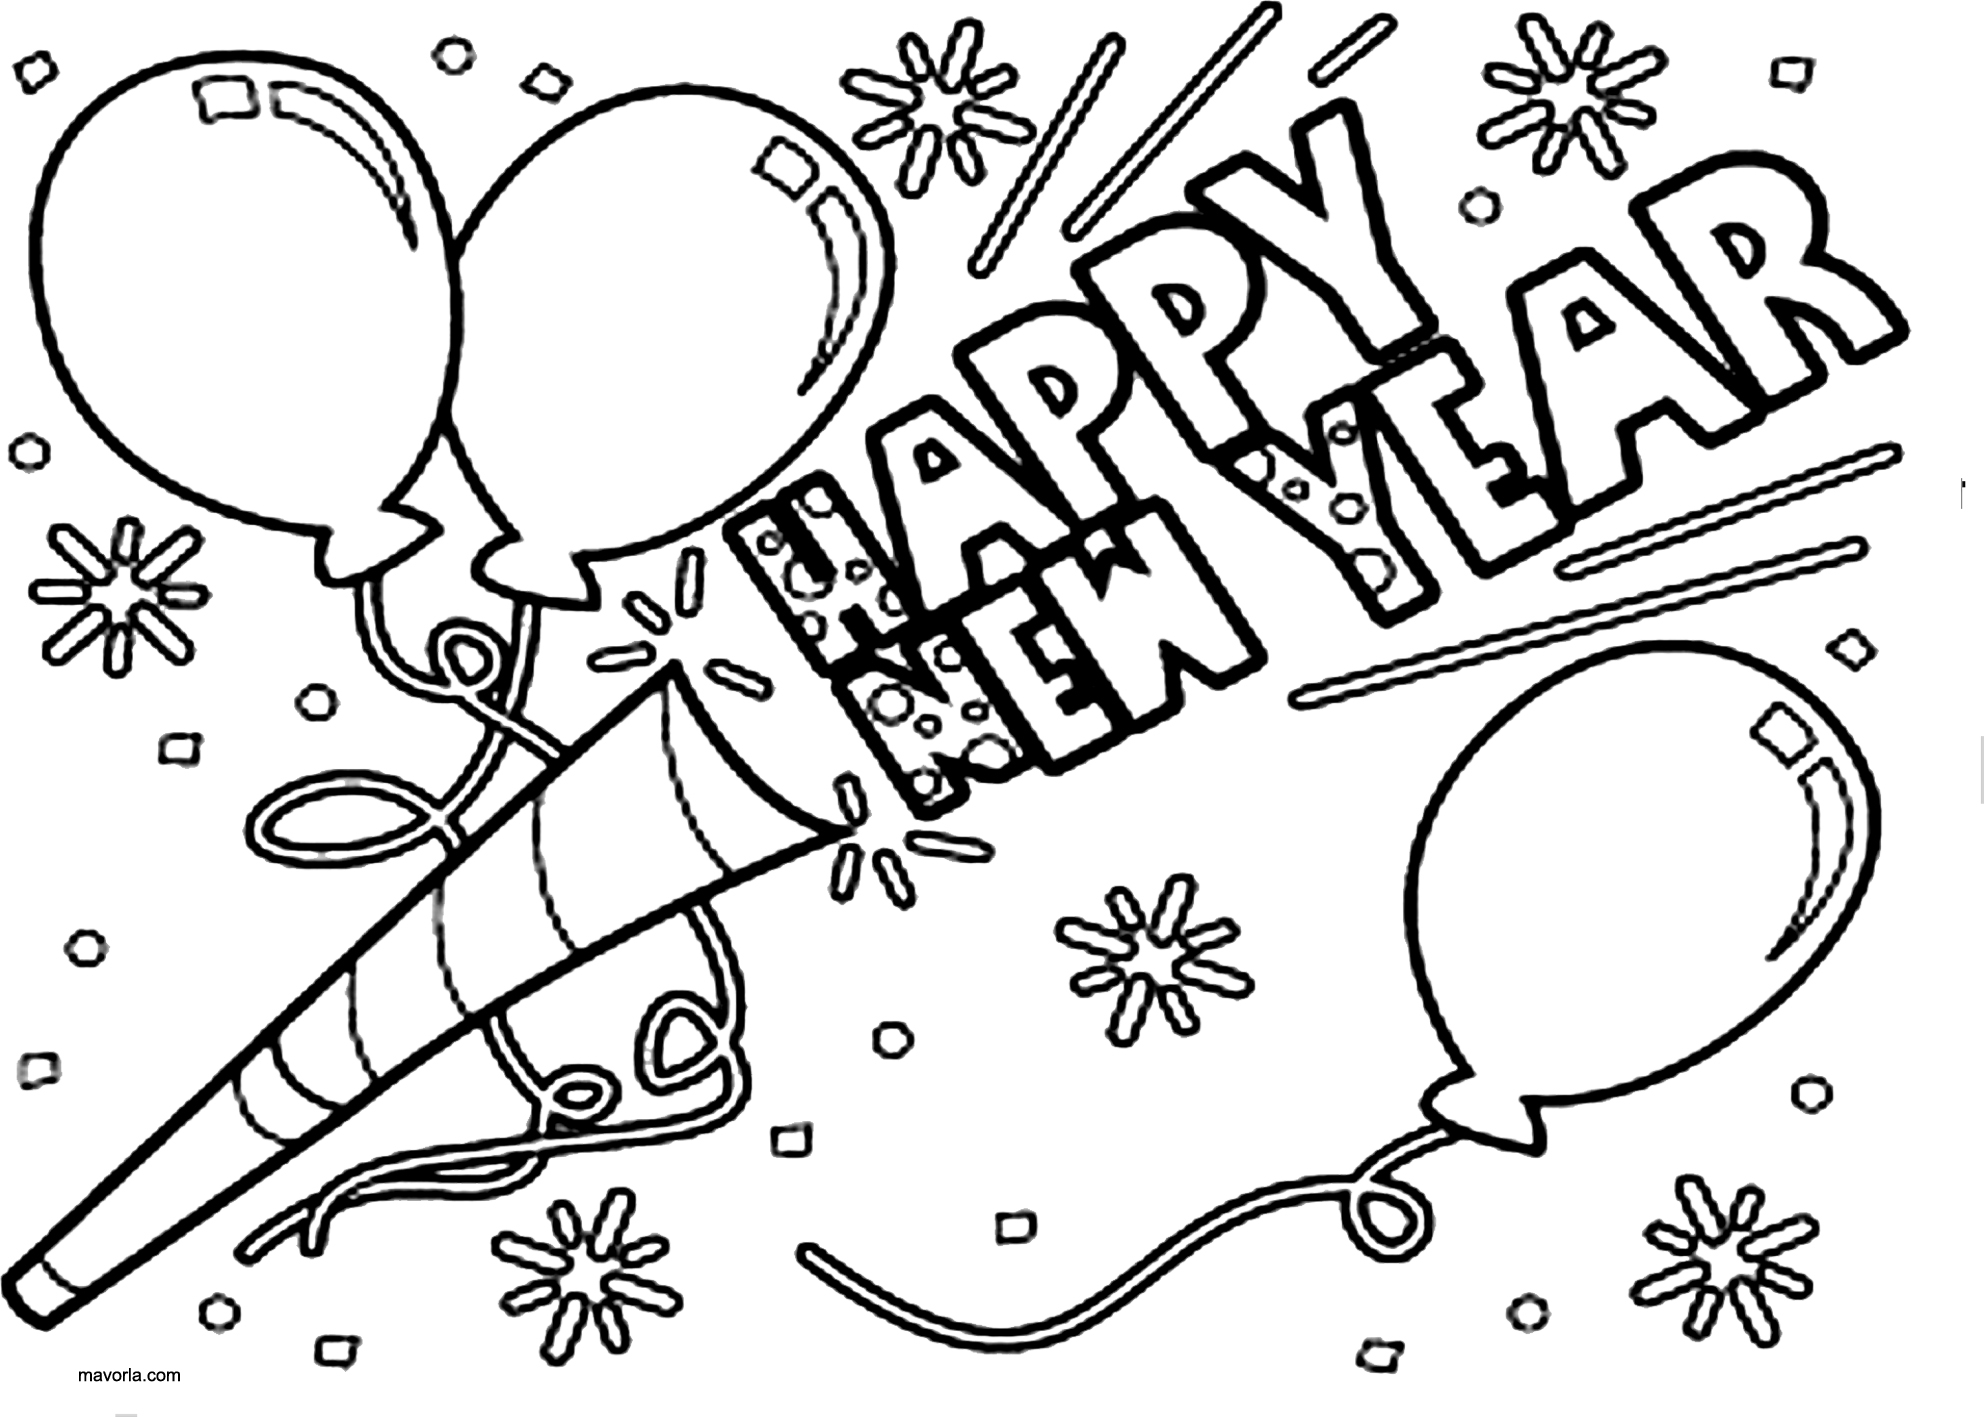 coloring new year free printable happy new year coloring pages funsoke coloring new year